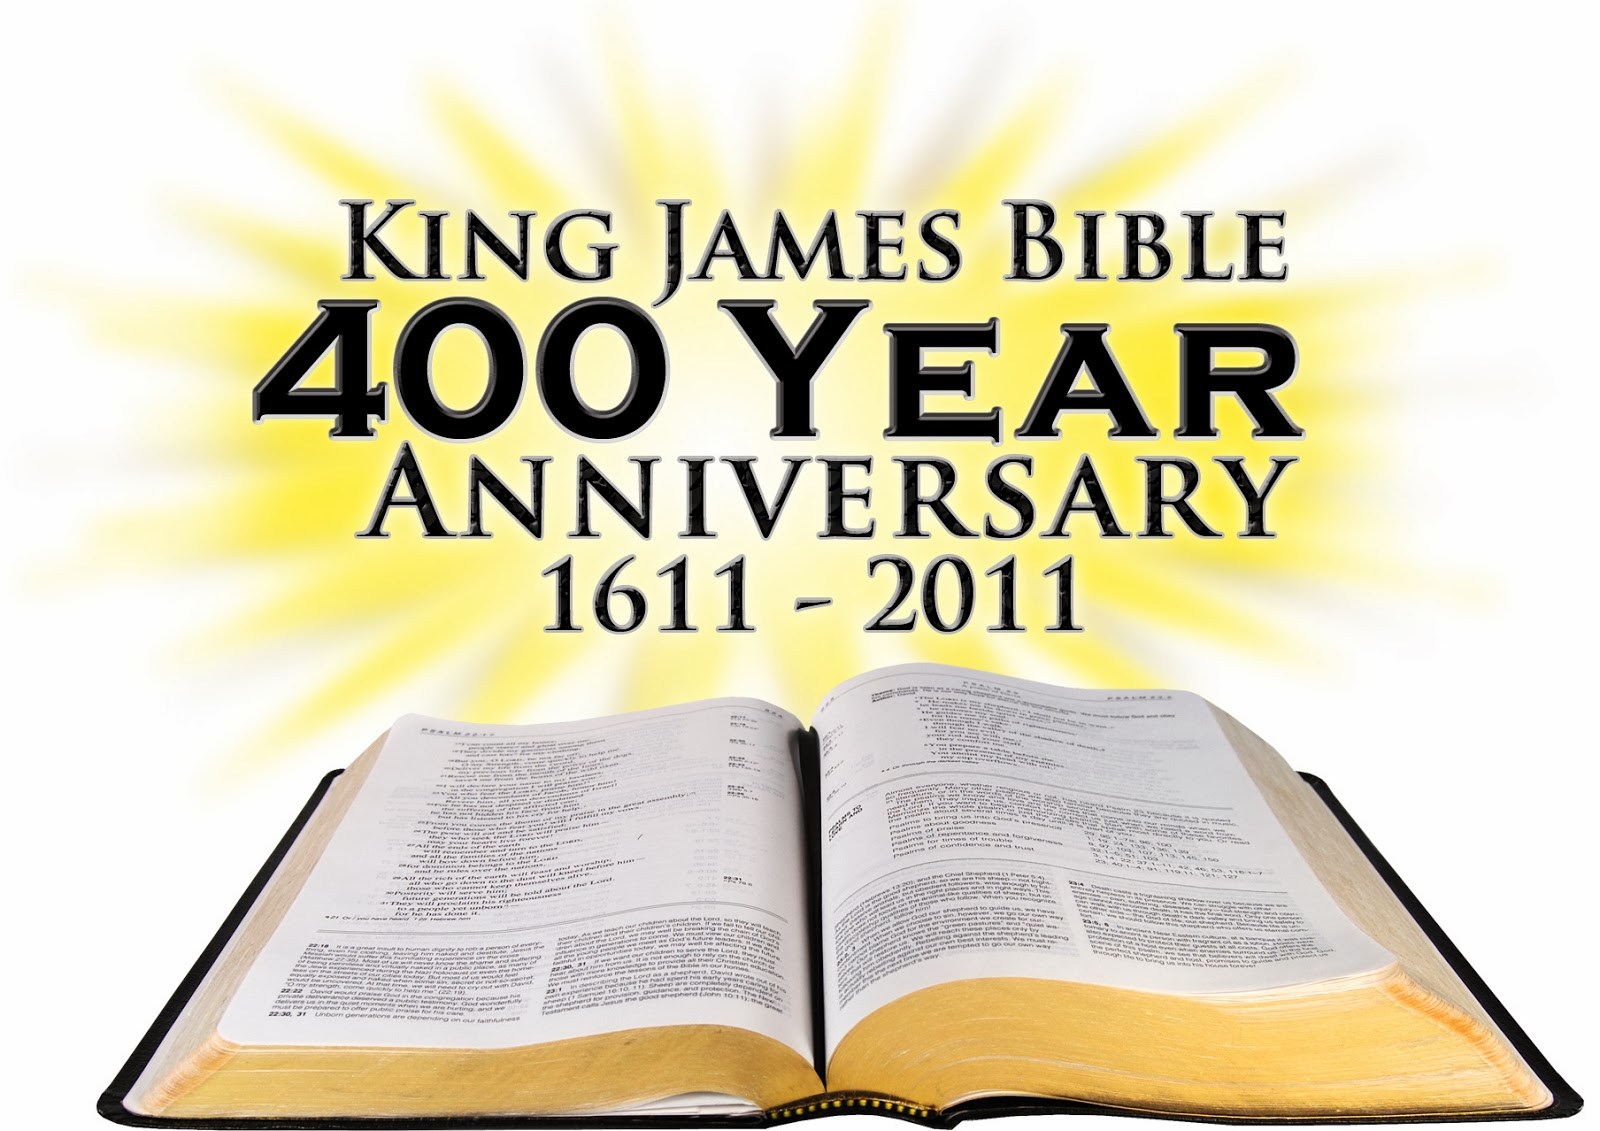 King James Bible - 400 Year Anniversary - 1611- 2011